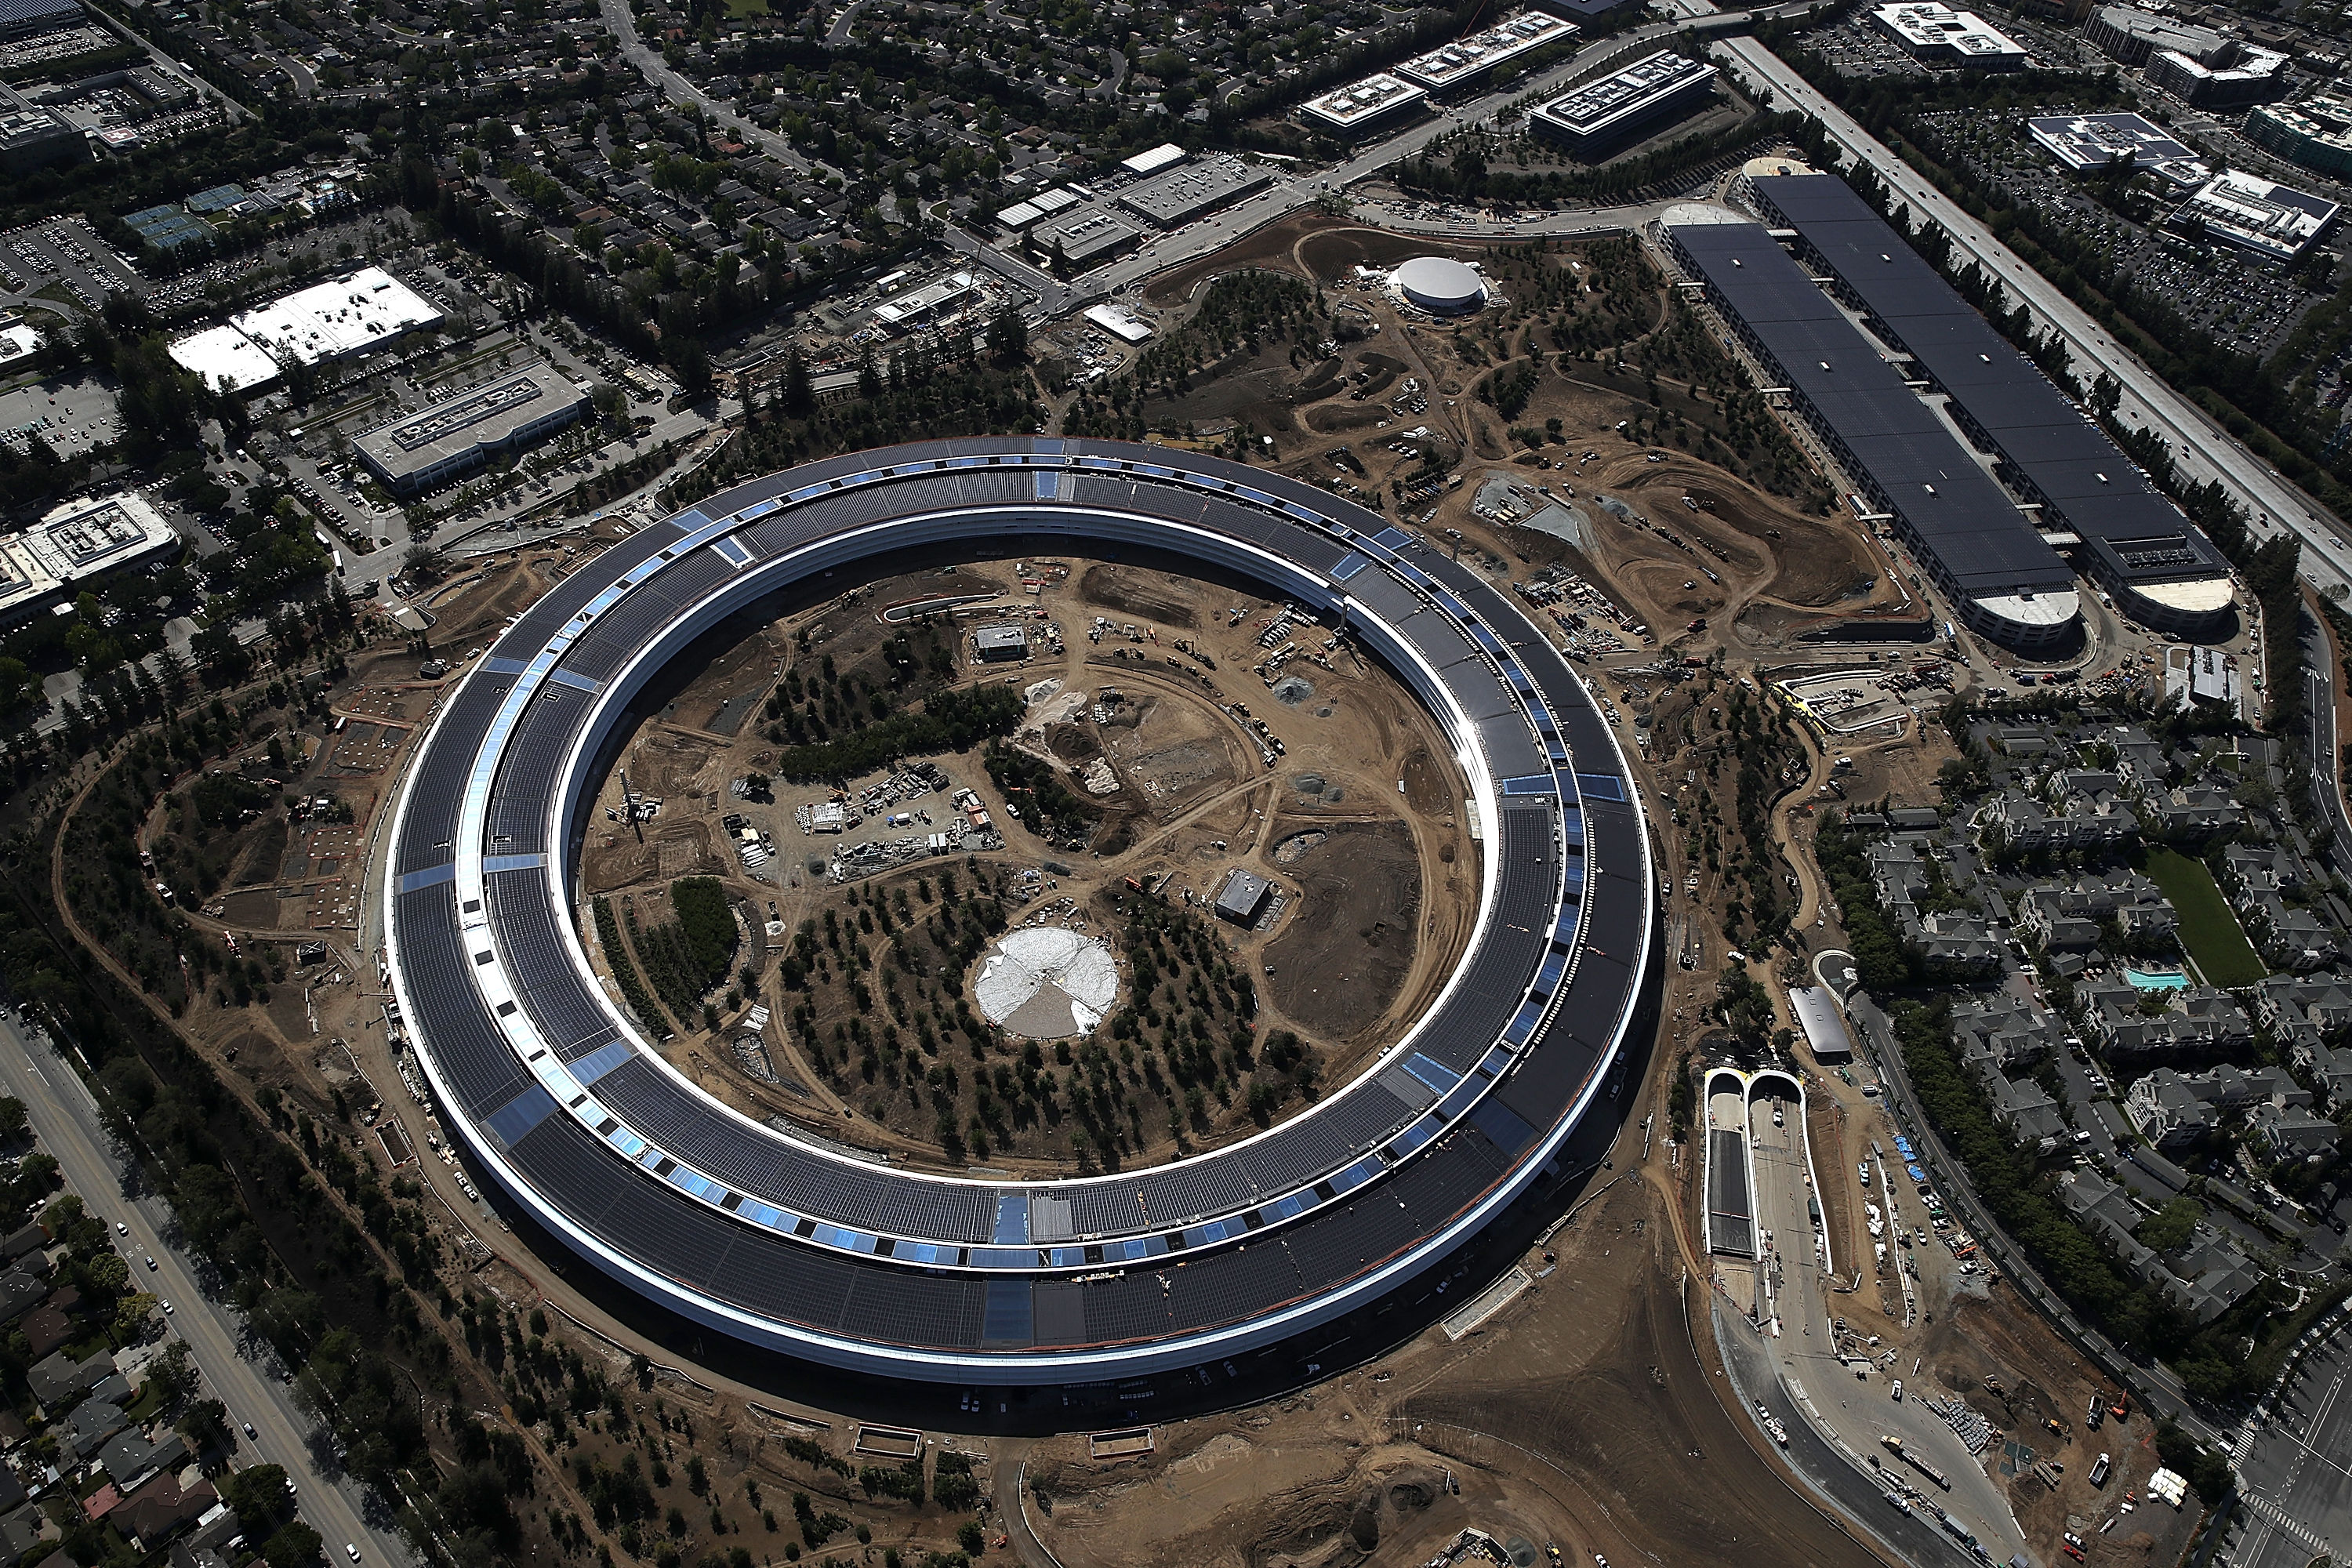 Apple security cracks down on drone pilot who shoots epic Apple campus videos